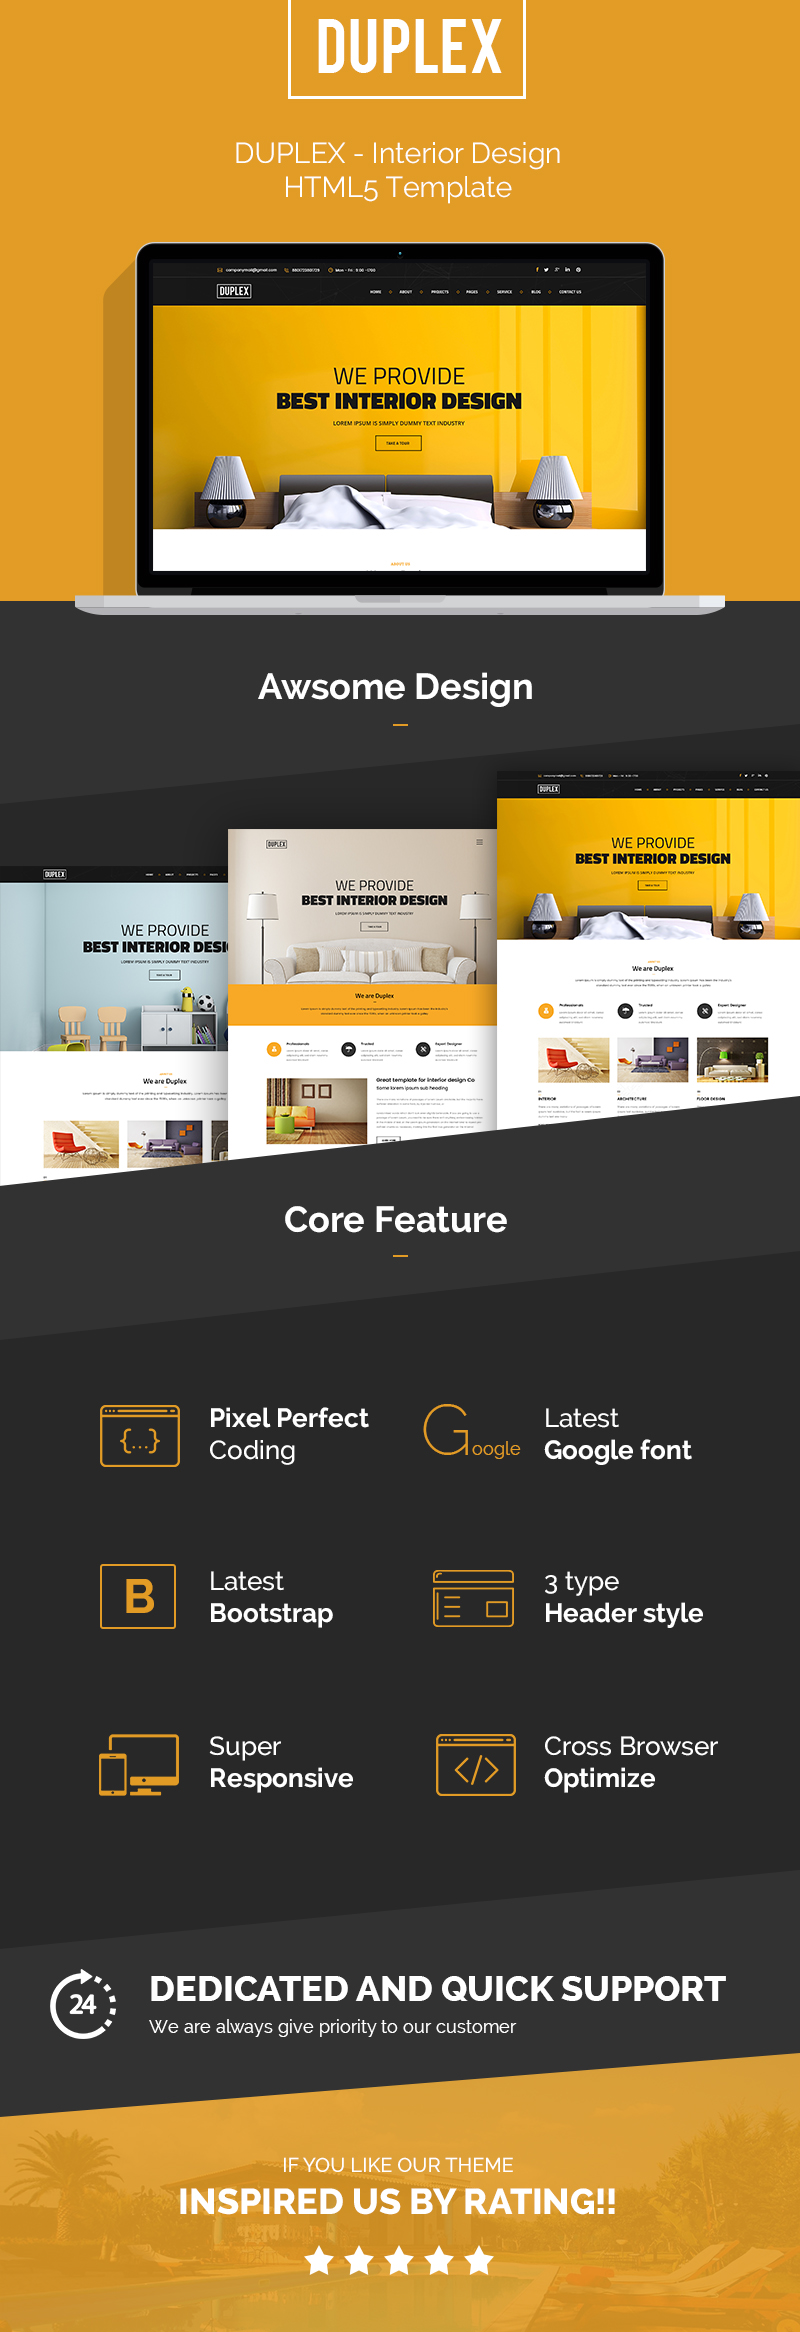 Duplex - interior and architecture design Template by template_path